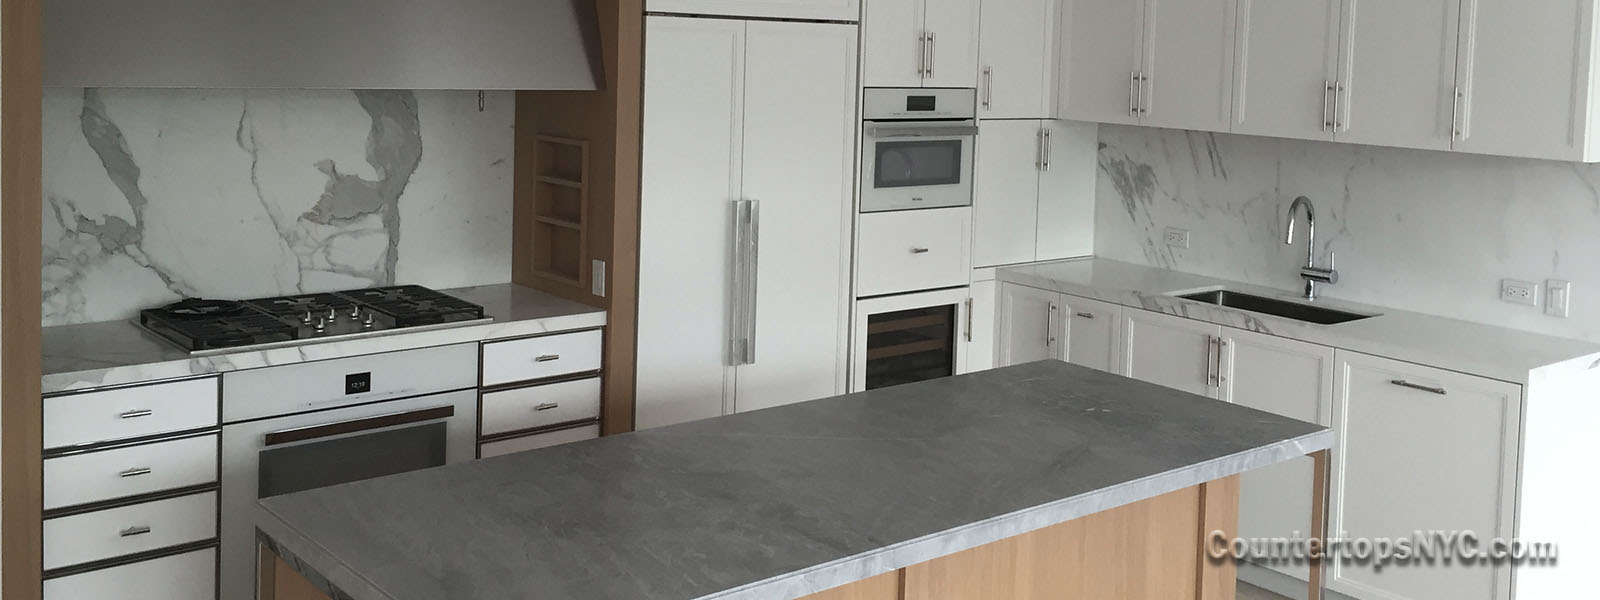 Countertops Nyc Countertops Nyc Supplying And Installing All Types Of Natural Stone Such As Marble Granite And Quartzite Countertops In Nyc We Are Fabricators Of All Major Quartz Stone Brands Including